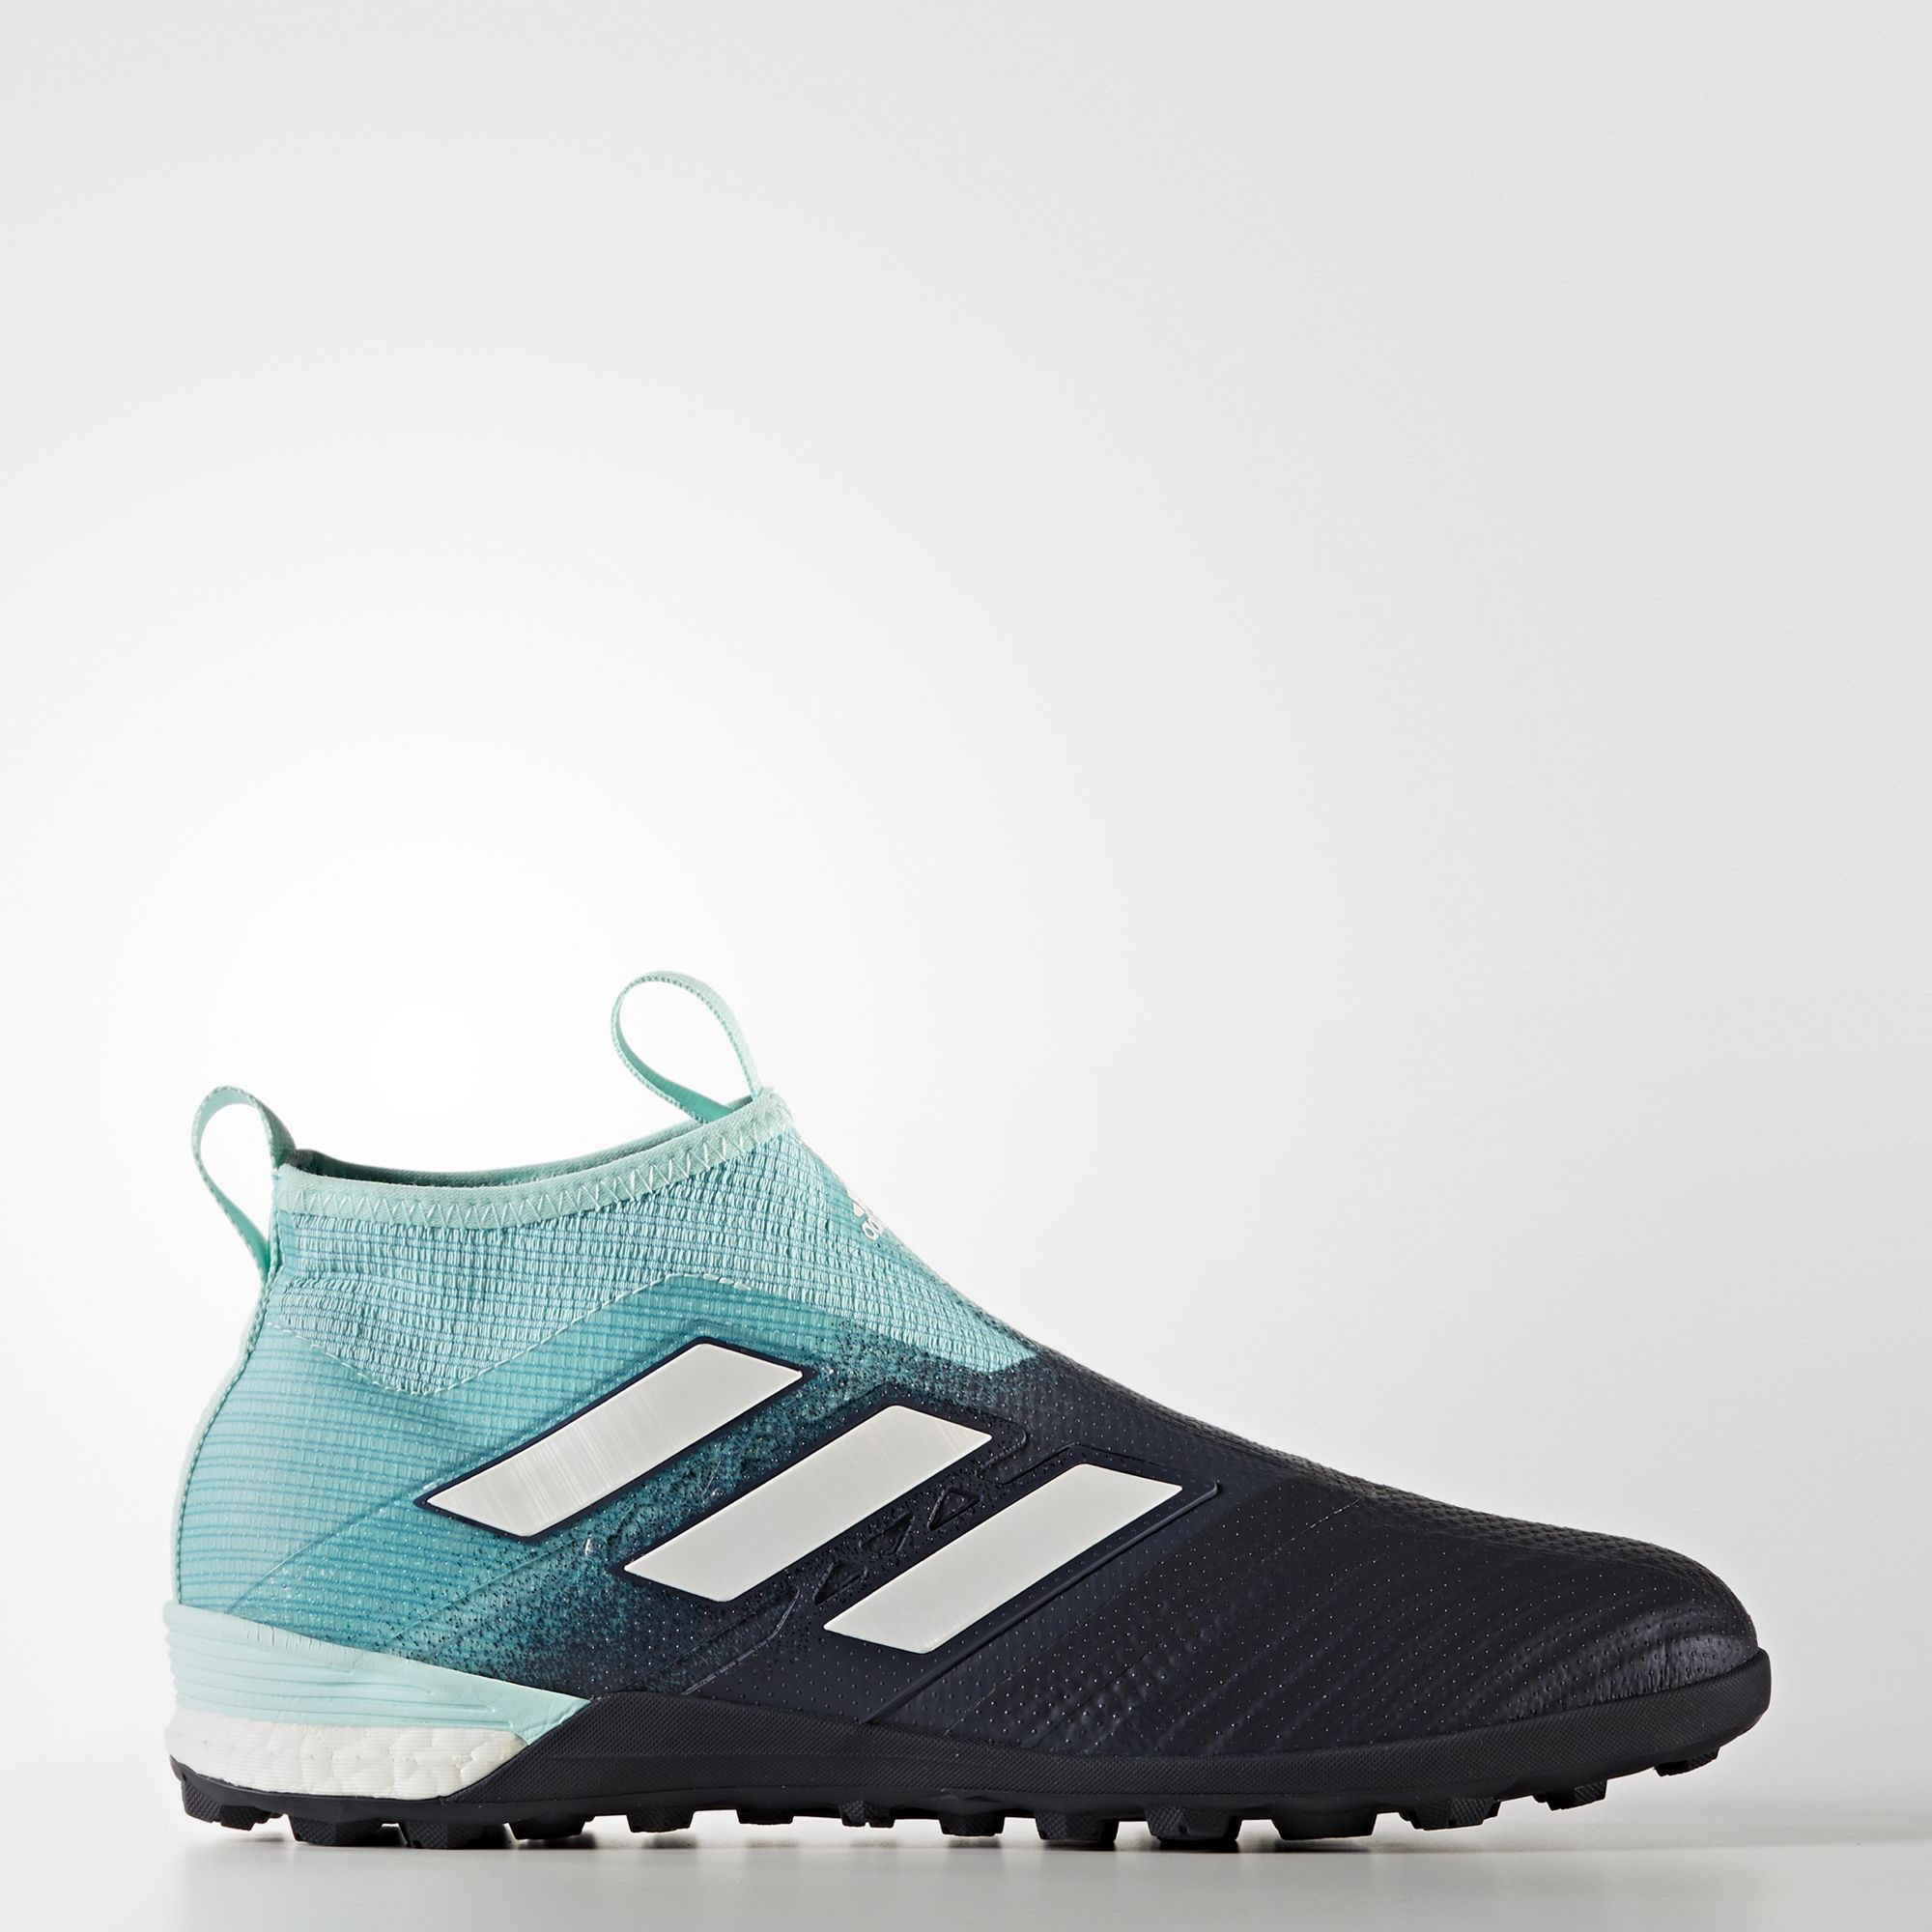 0d644af3233c Adidas ACE TANGO 17+ PURECONTROL TURF SHOES